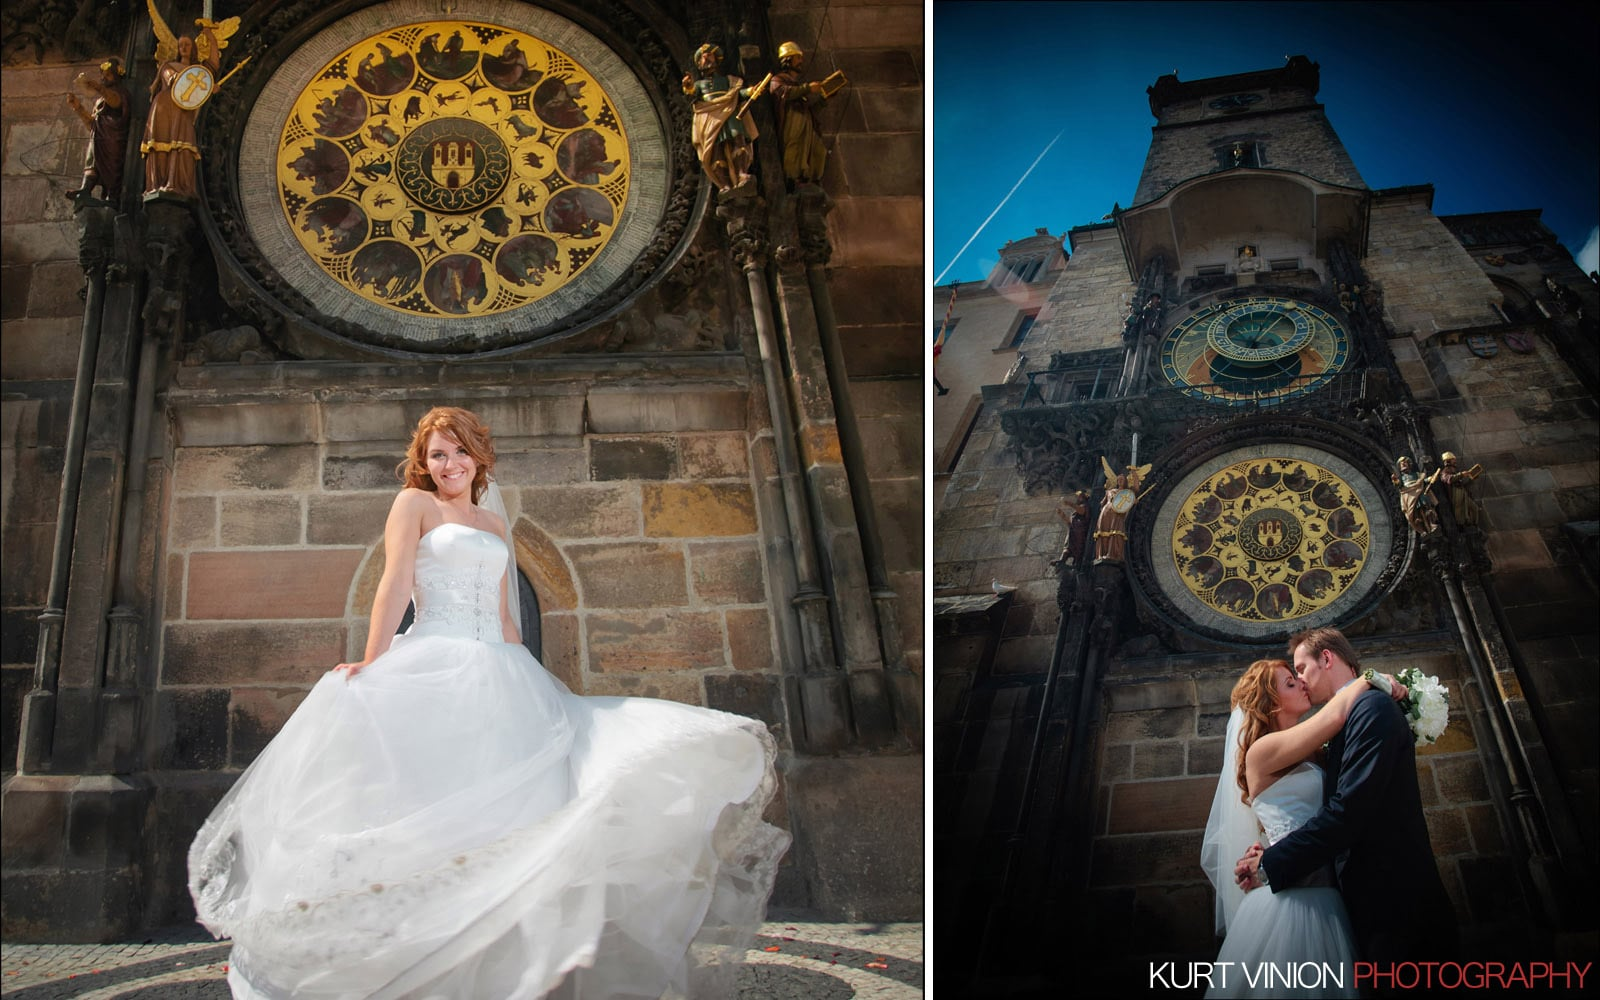 Elopement wedding Prague / Polya & Dirk wedding portraits at the Astronomical Clock